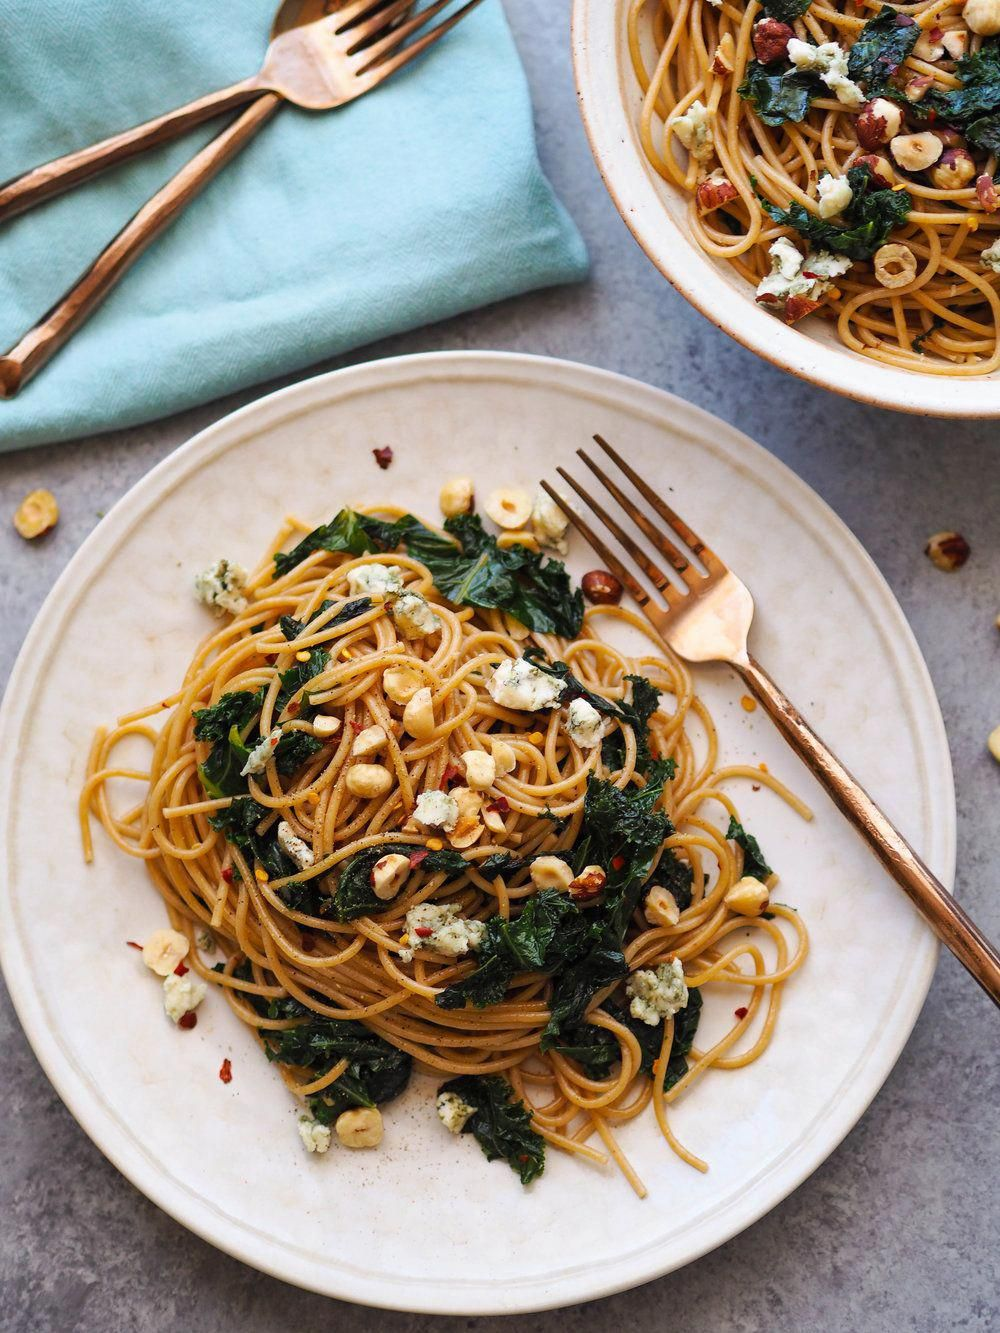 Nutritionprograms Id 7809100559 Nutritionalvalue Pasta Nutrition Vegetarian Pasta Dishes Cheese Nutrition